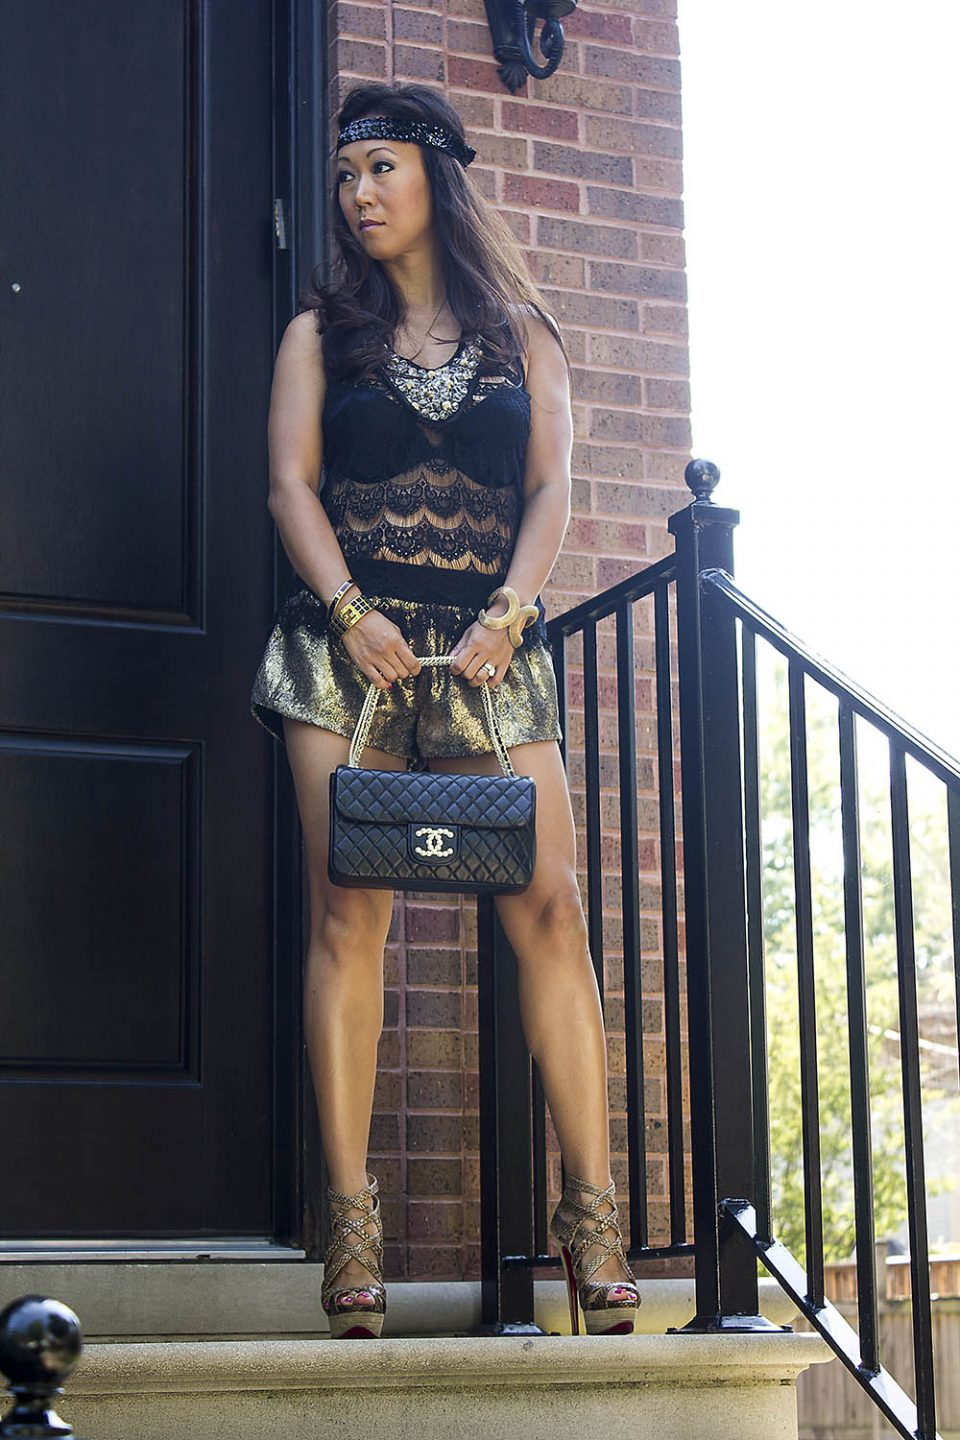 janet mandell of fashionaholic wearing blue